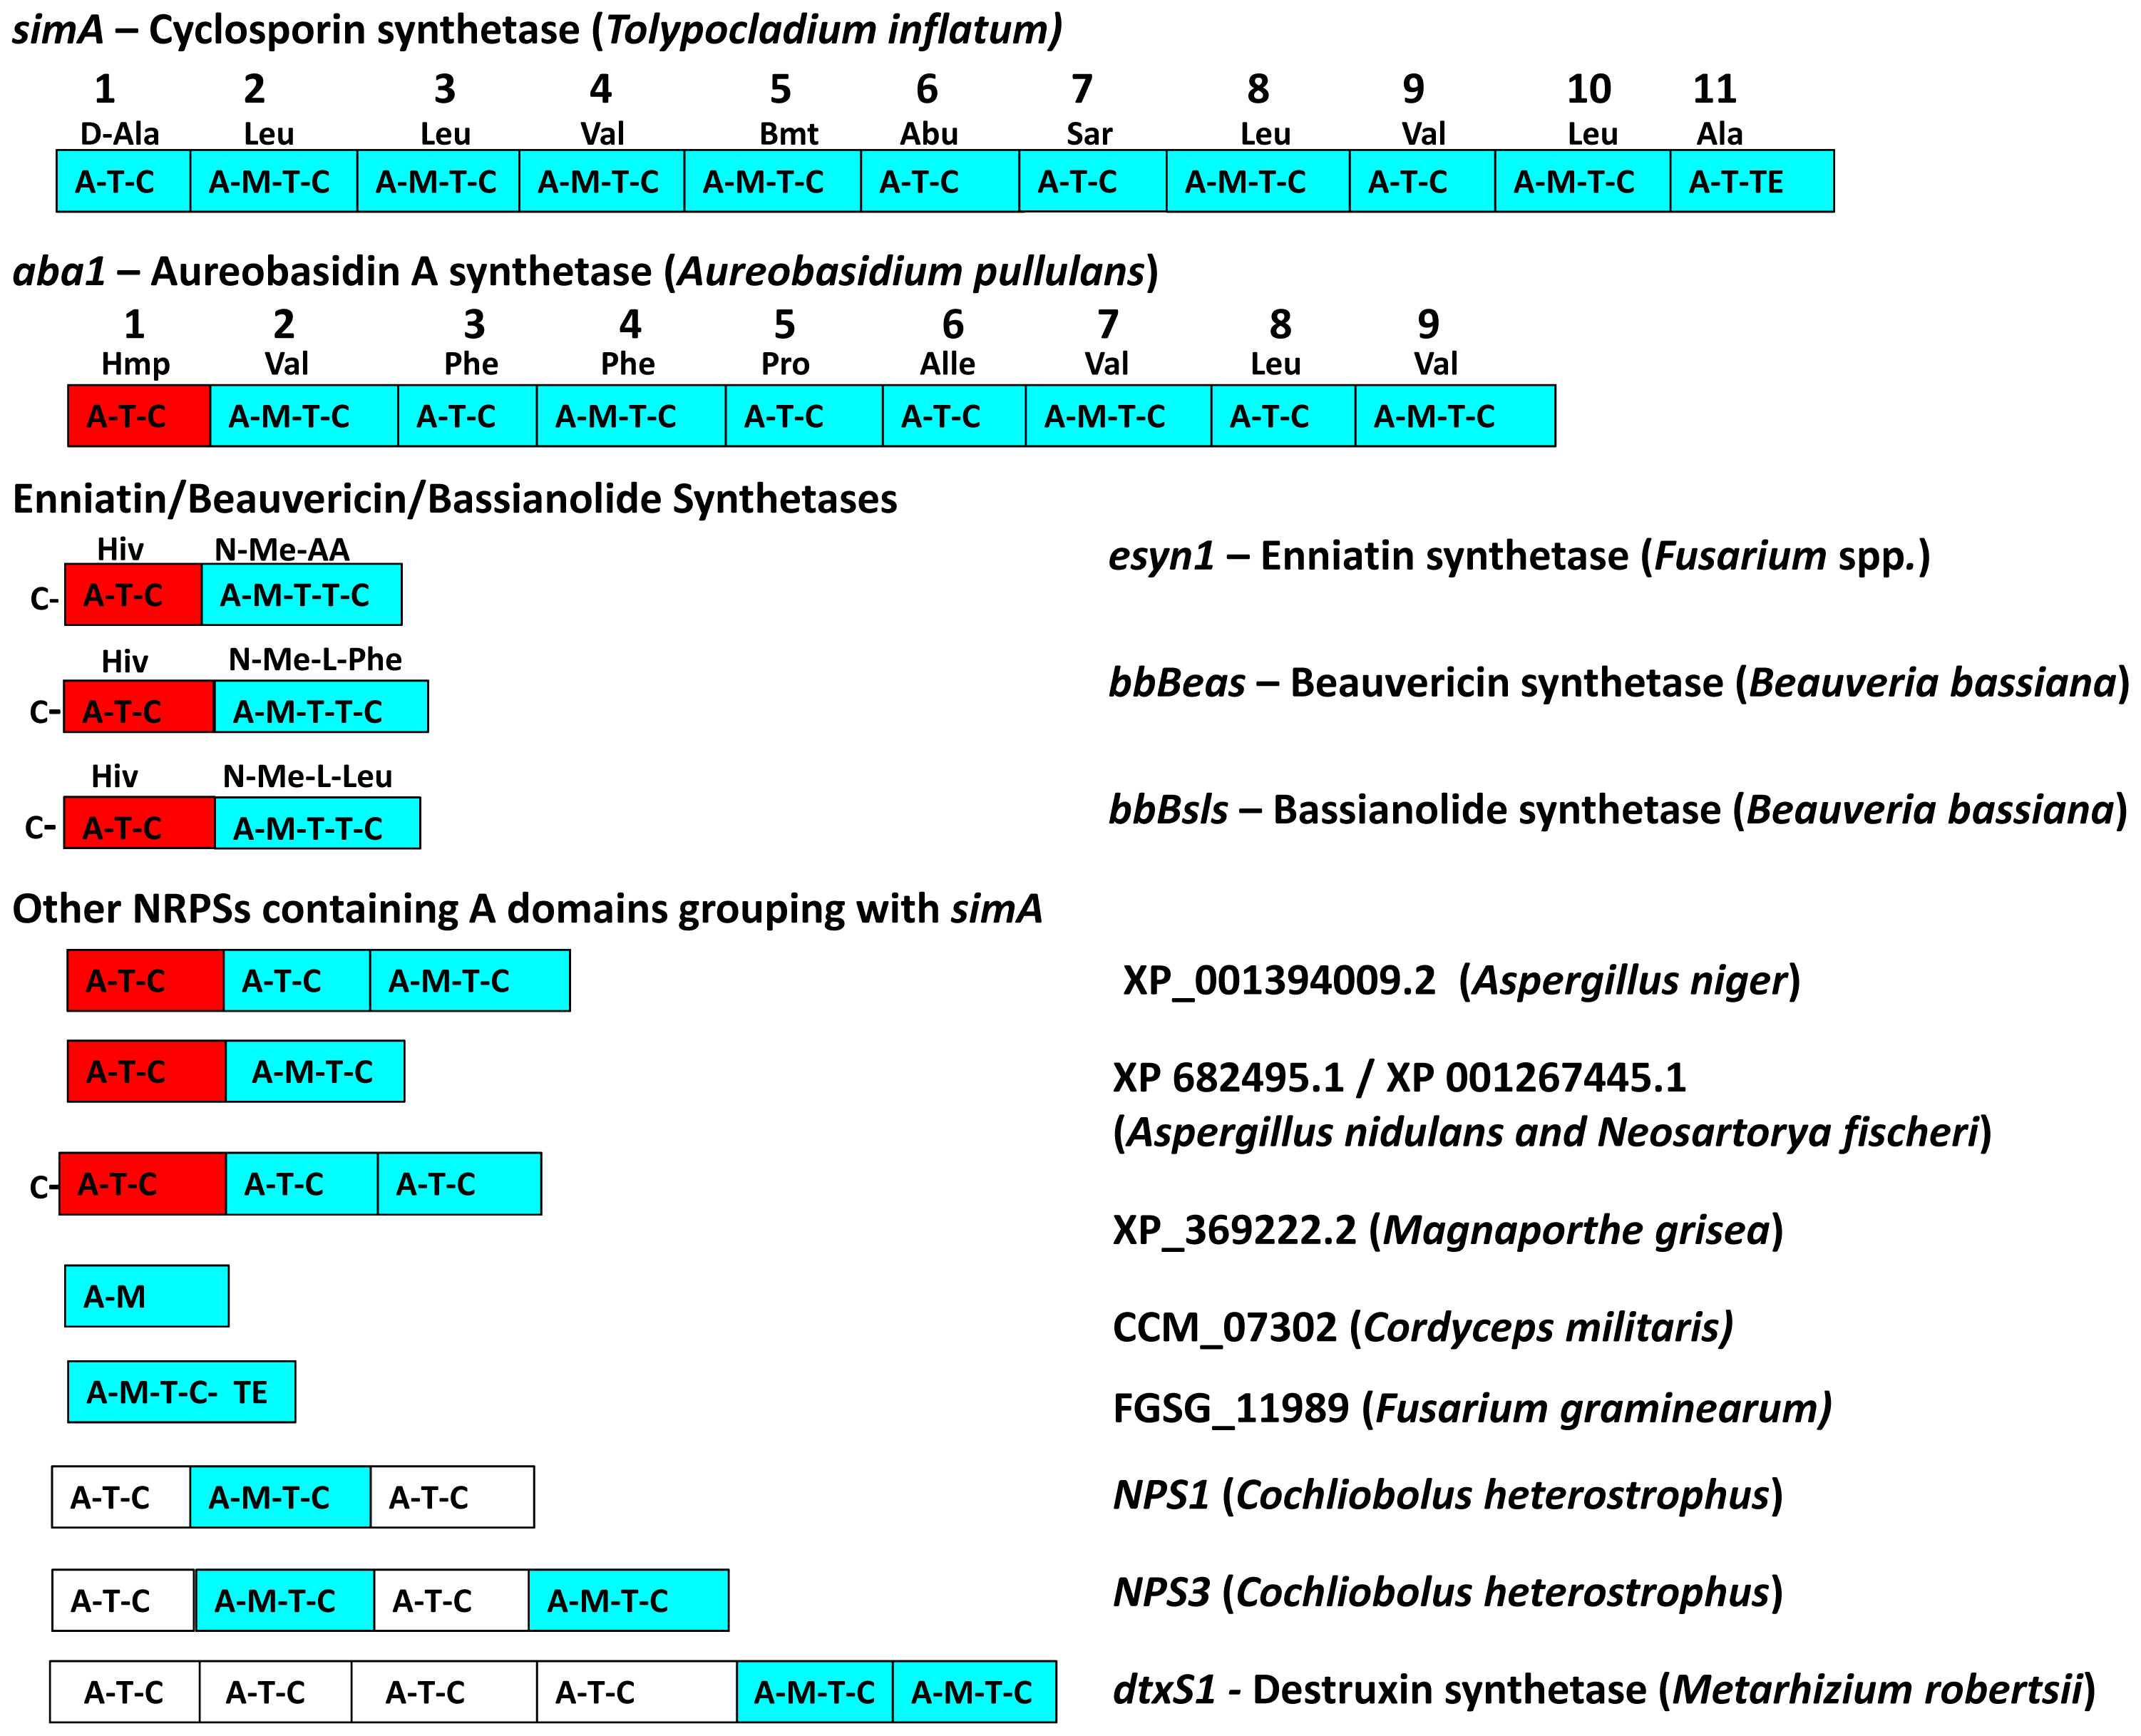 Modular domain structure and A-domain specificities of NRPSs grouping within the <i>simA</i> clade.